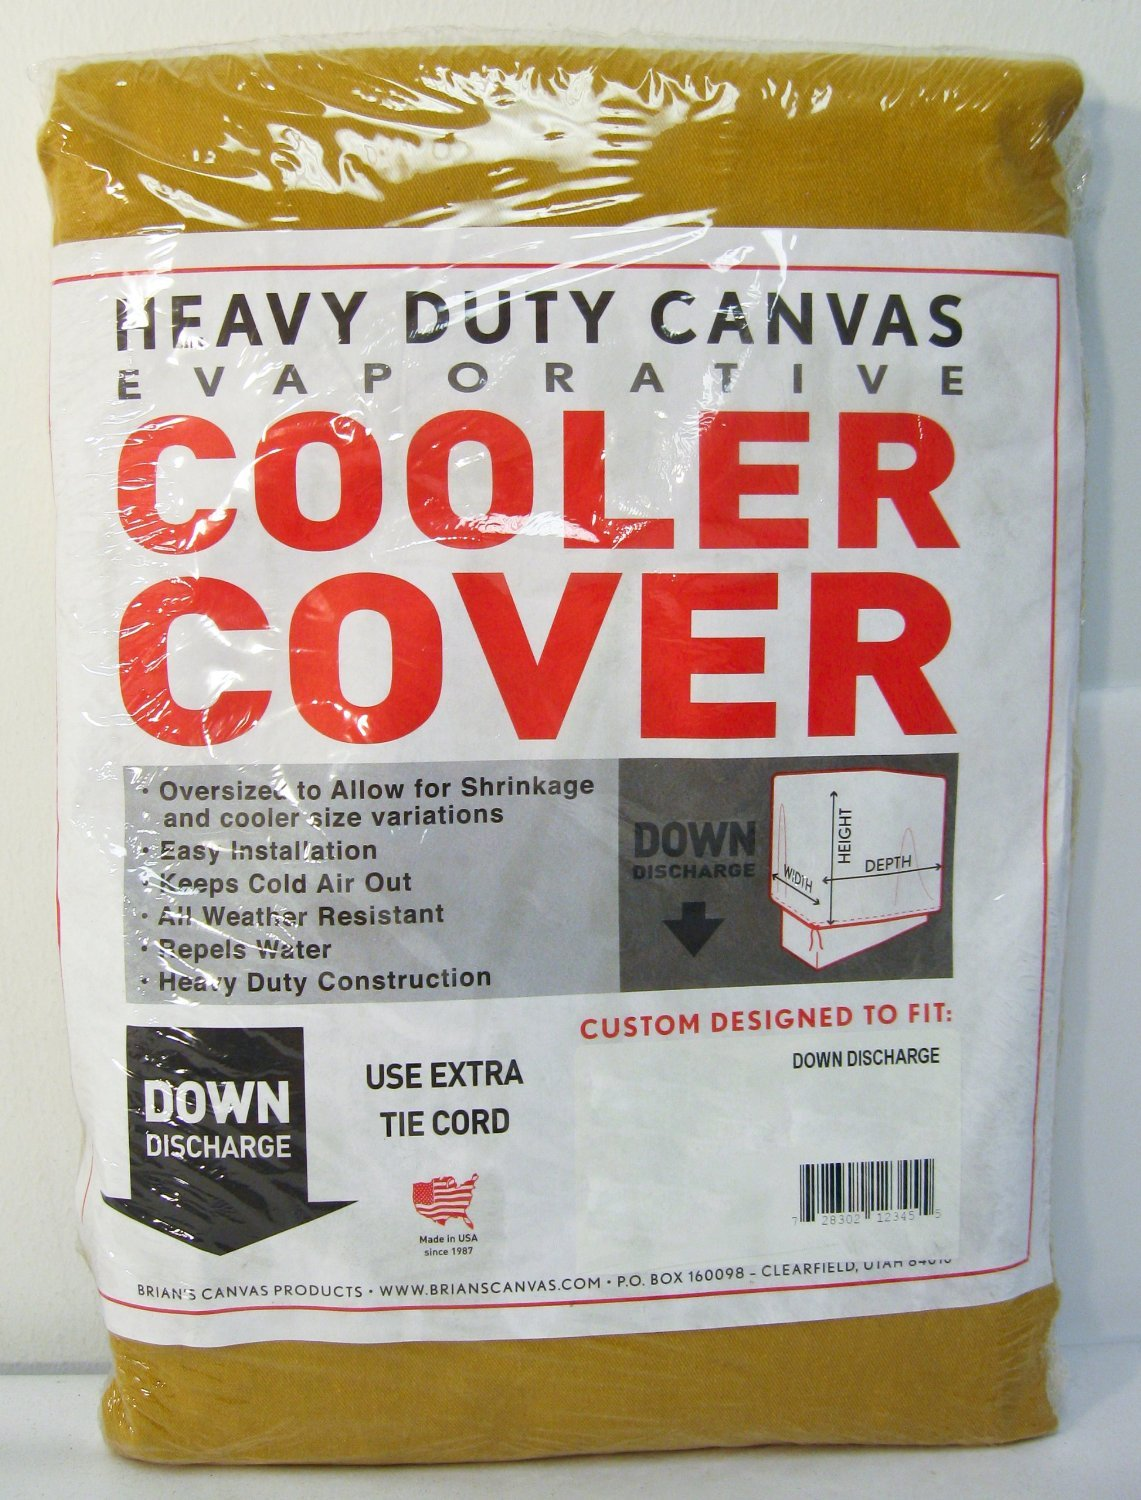 42 in. x 45 in. x 35 in. Evaporative Cooler Down Discharge Cover by Brian's Canvas Products